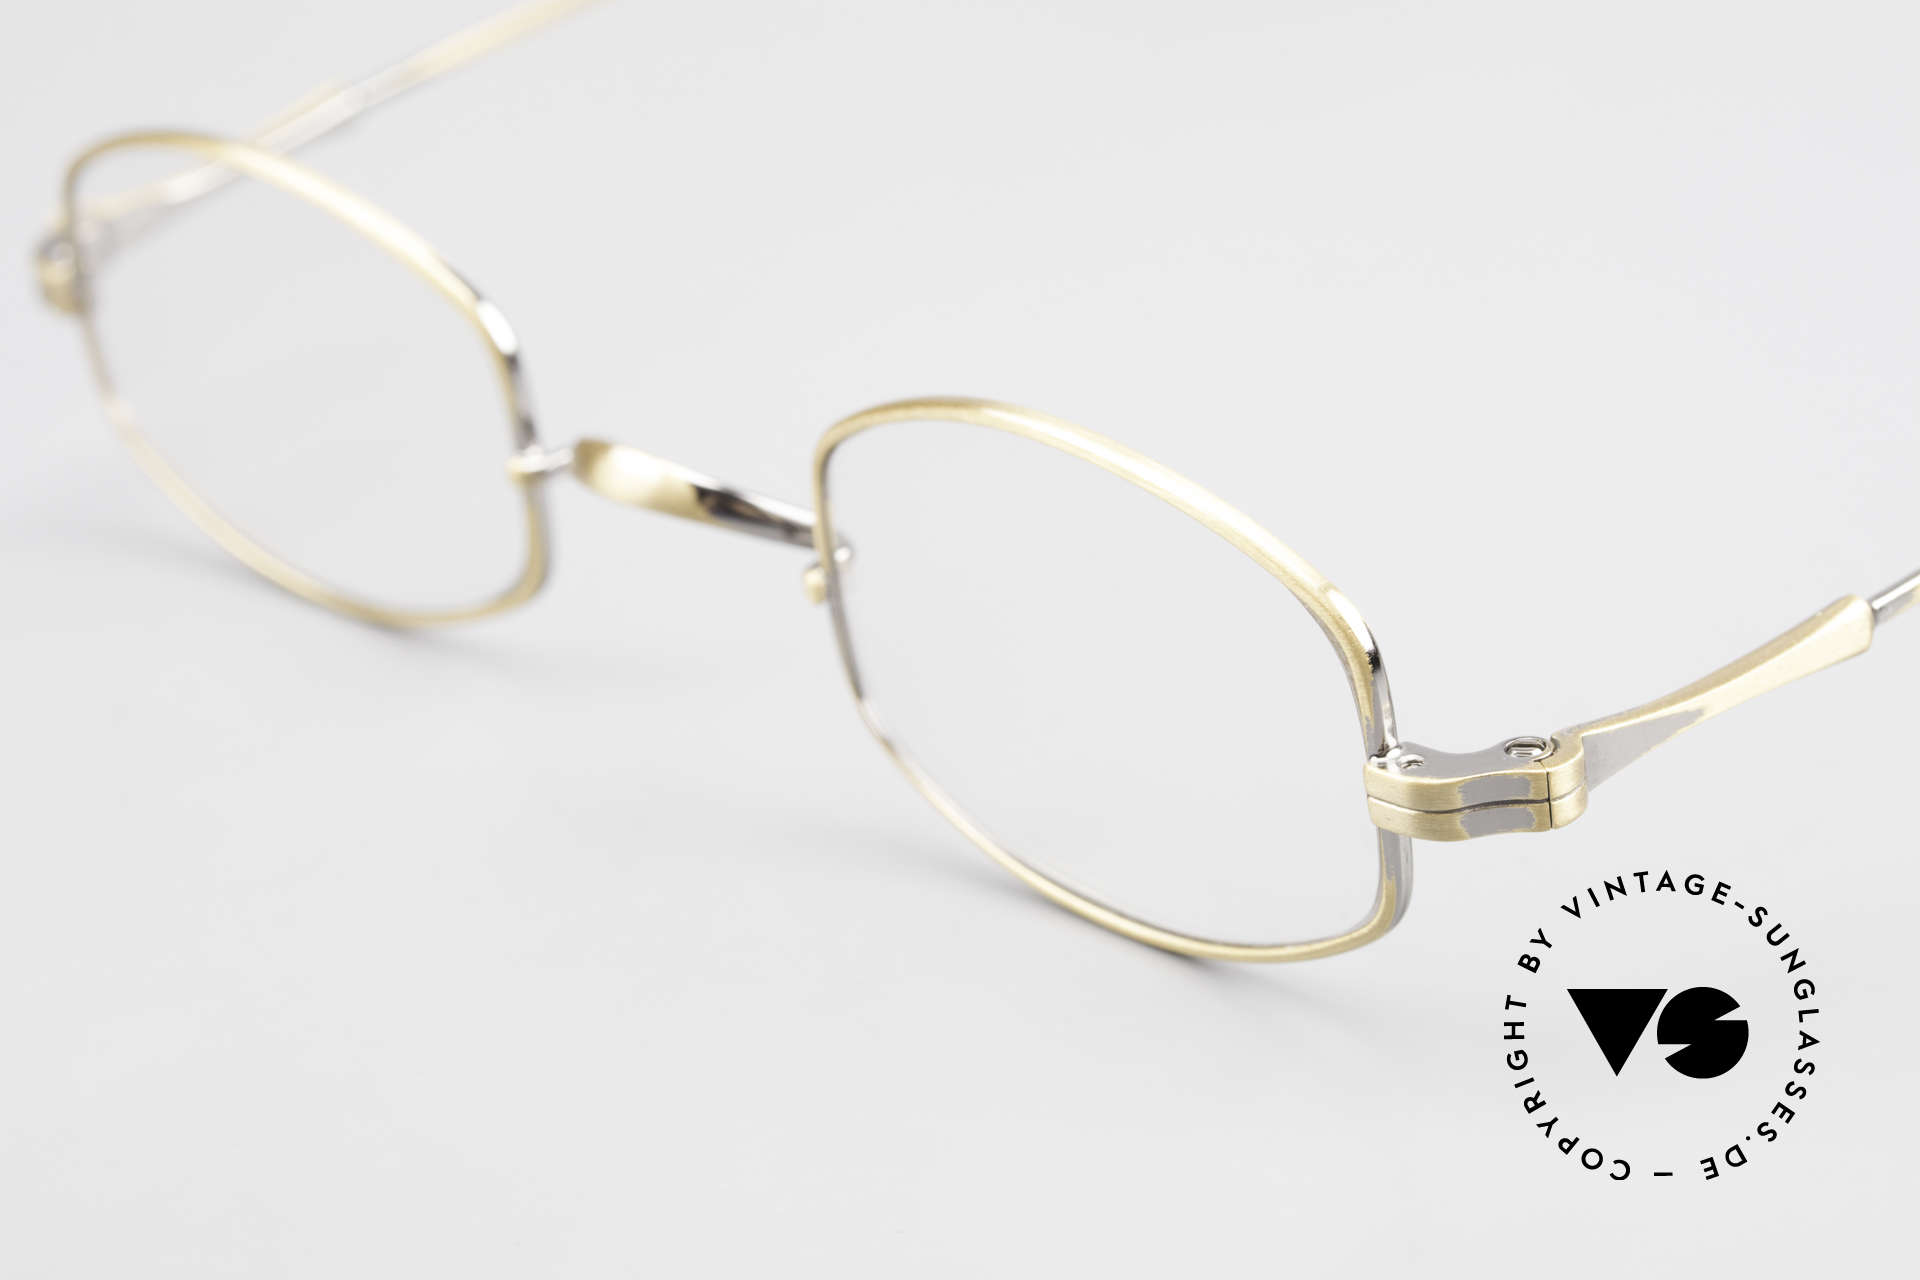 """Lunor II 16 Lunor Eyeglasses Old Classic, very interesting frame finish in """"antique gold"""", UNIQUE, Made for Men and Women"""